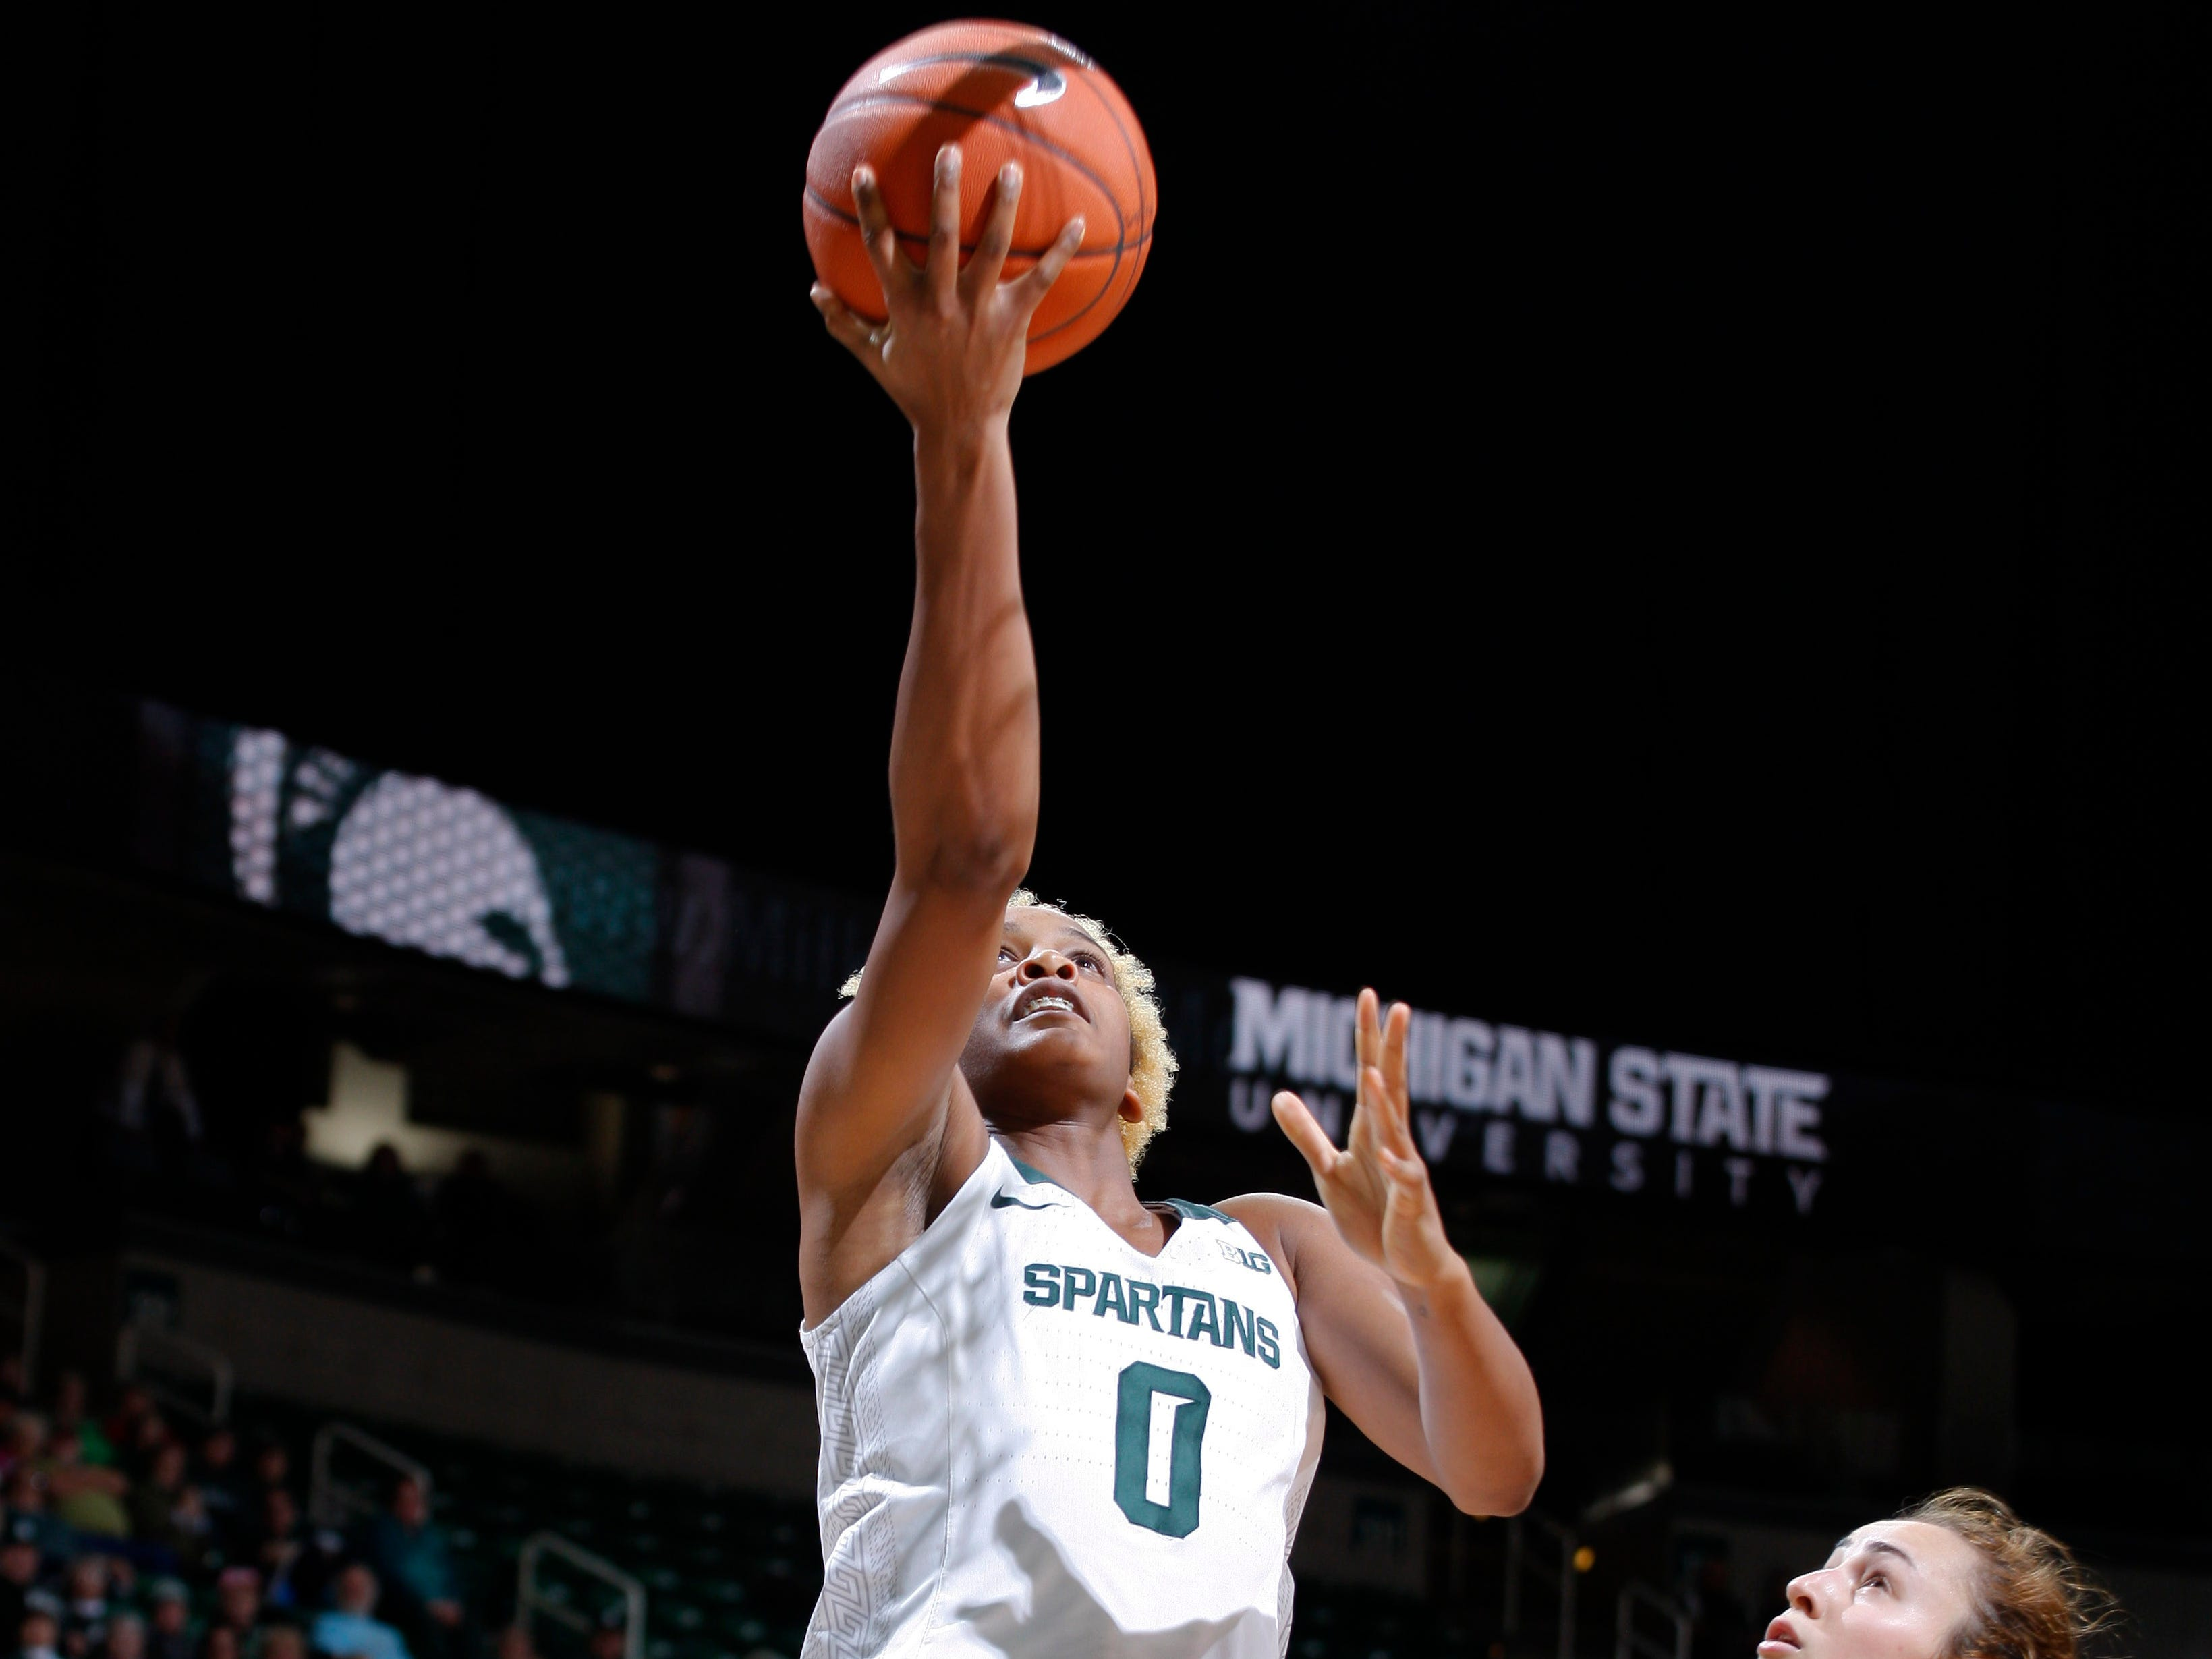 Michigan State's Shay Colley gets a fast-break layup against Hillsdale's Brittany Gray, Thursday, Nov. 1, 2018, in East Lansing, Mich.